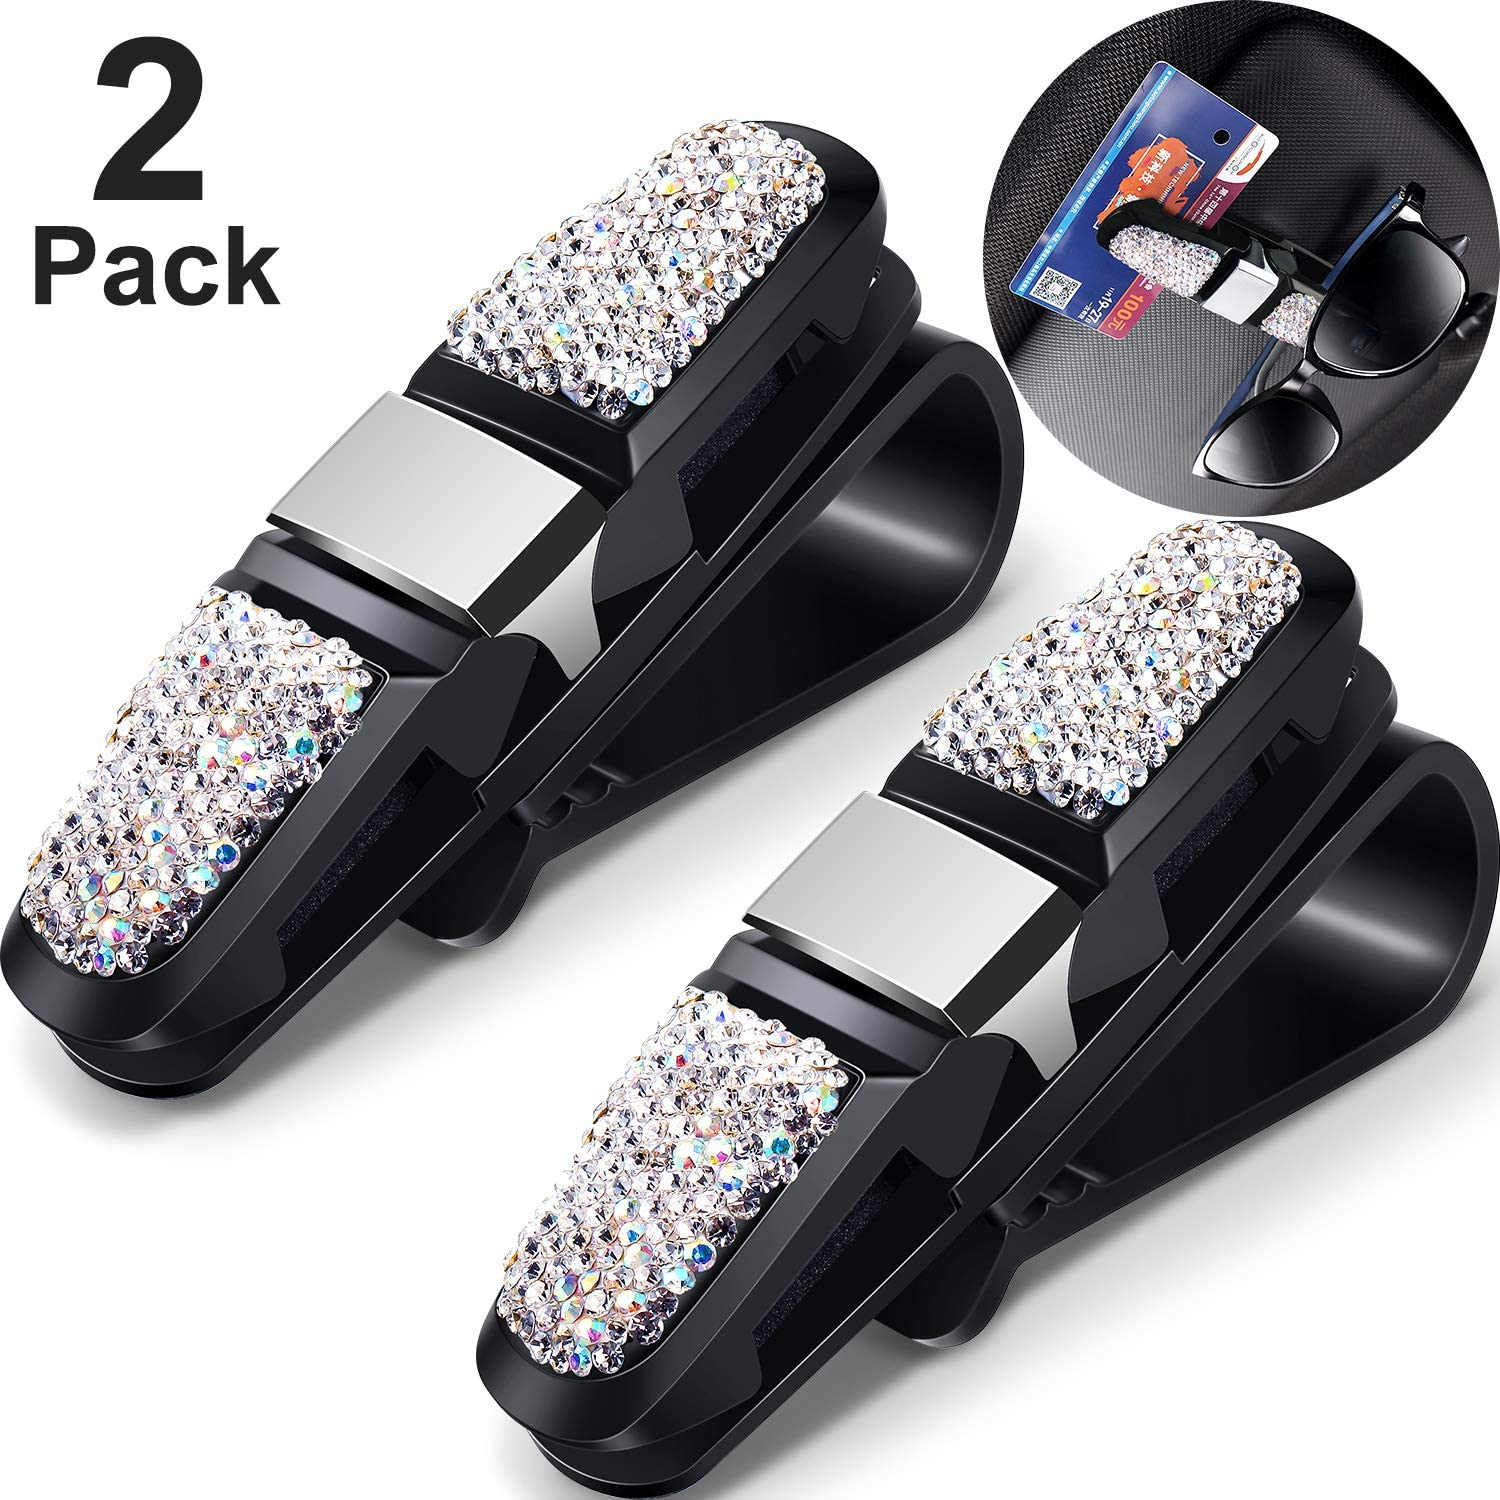 Frienda 2 Packs Glasses Holders for Car Sun Visor Bling Crystal Rhinestones Car Sun Visor Glasses Sunglasses Eyeglasses